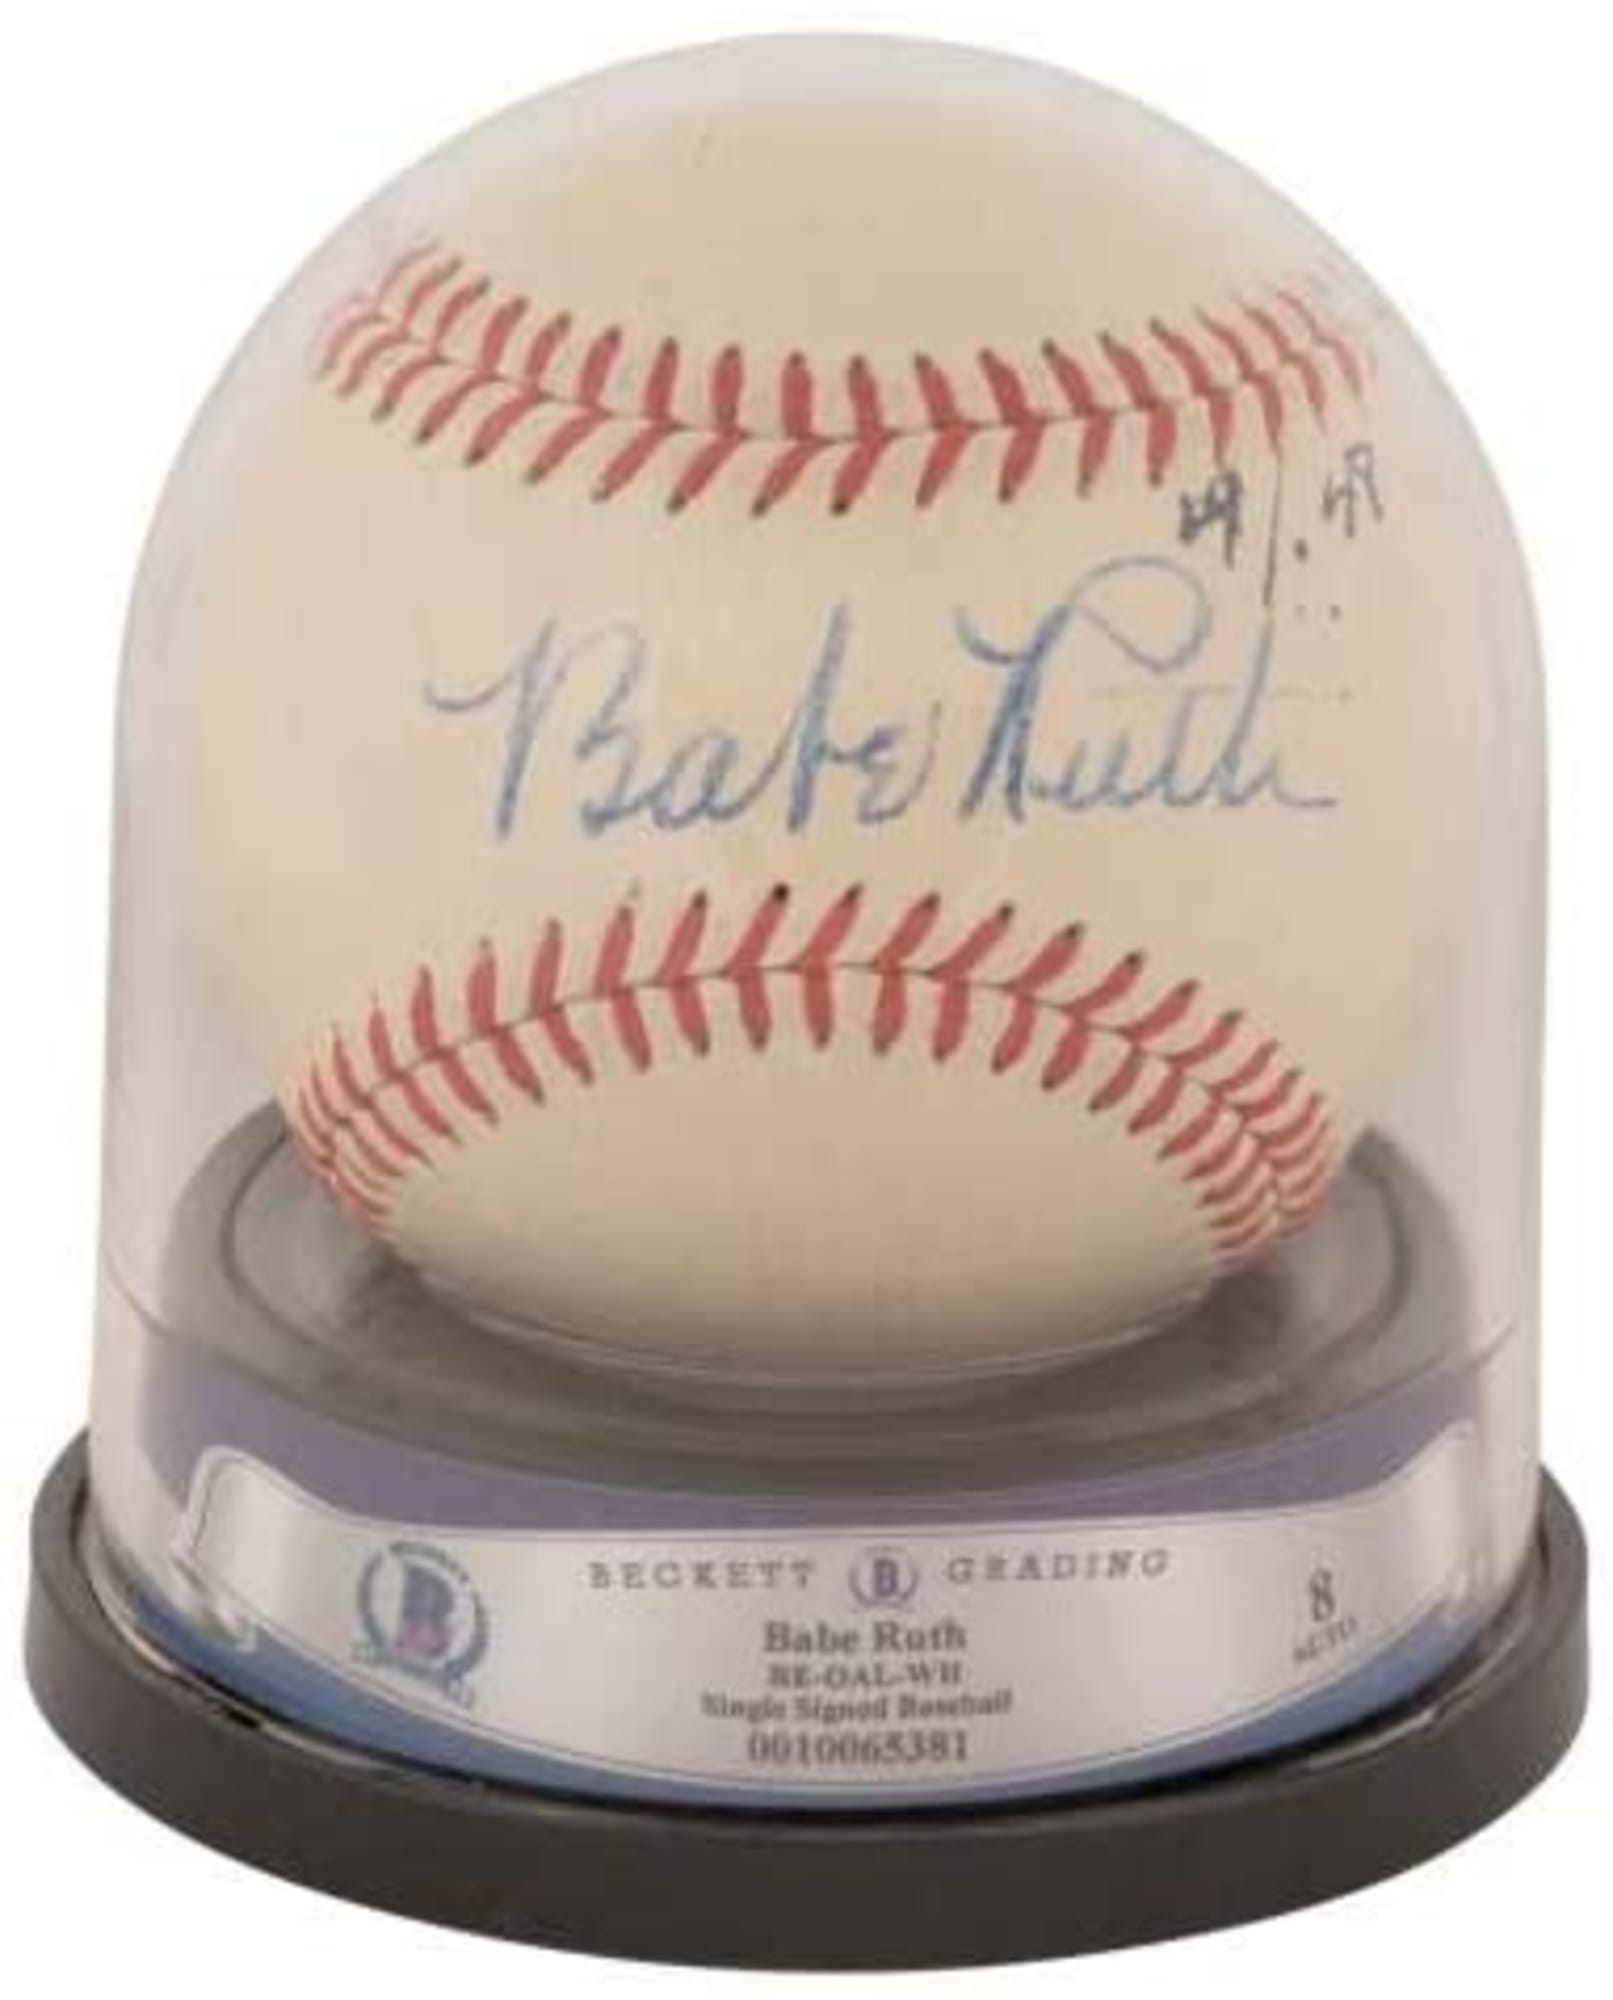 Big Bucks For The Bambino: Can you afford this Babe Ruth signed ball?